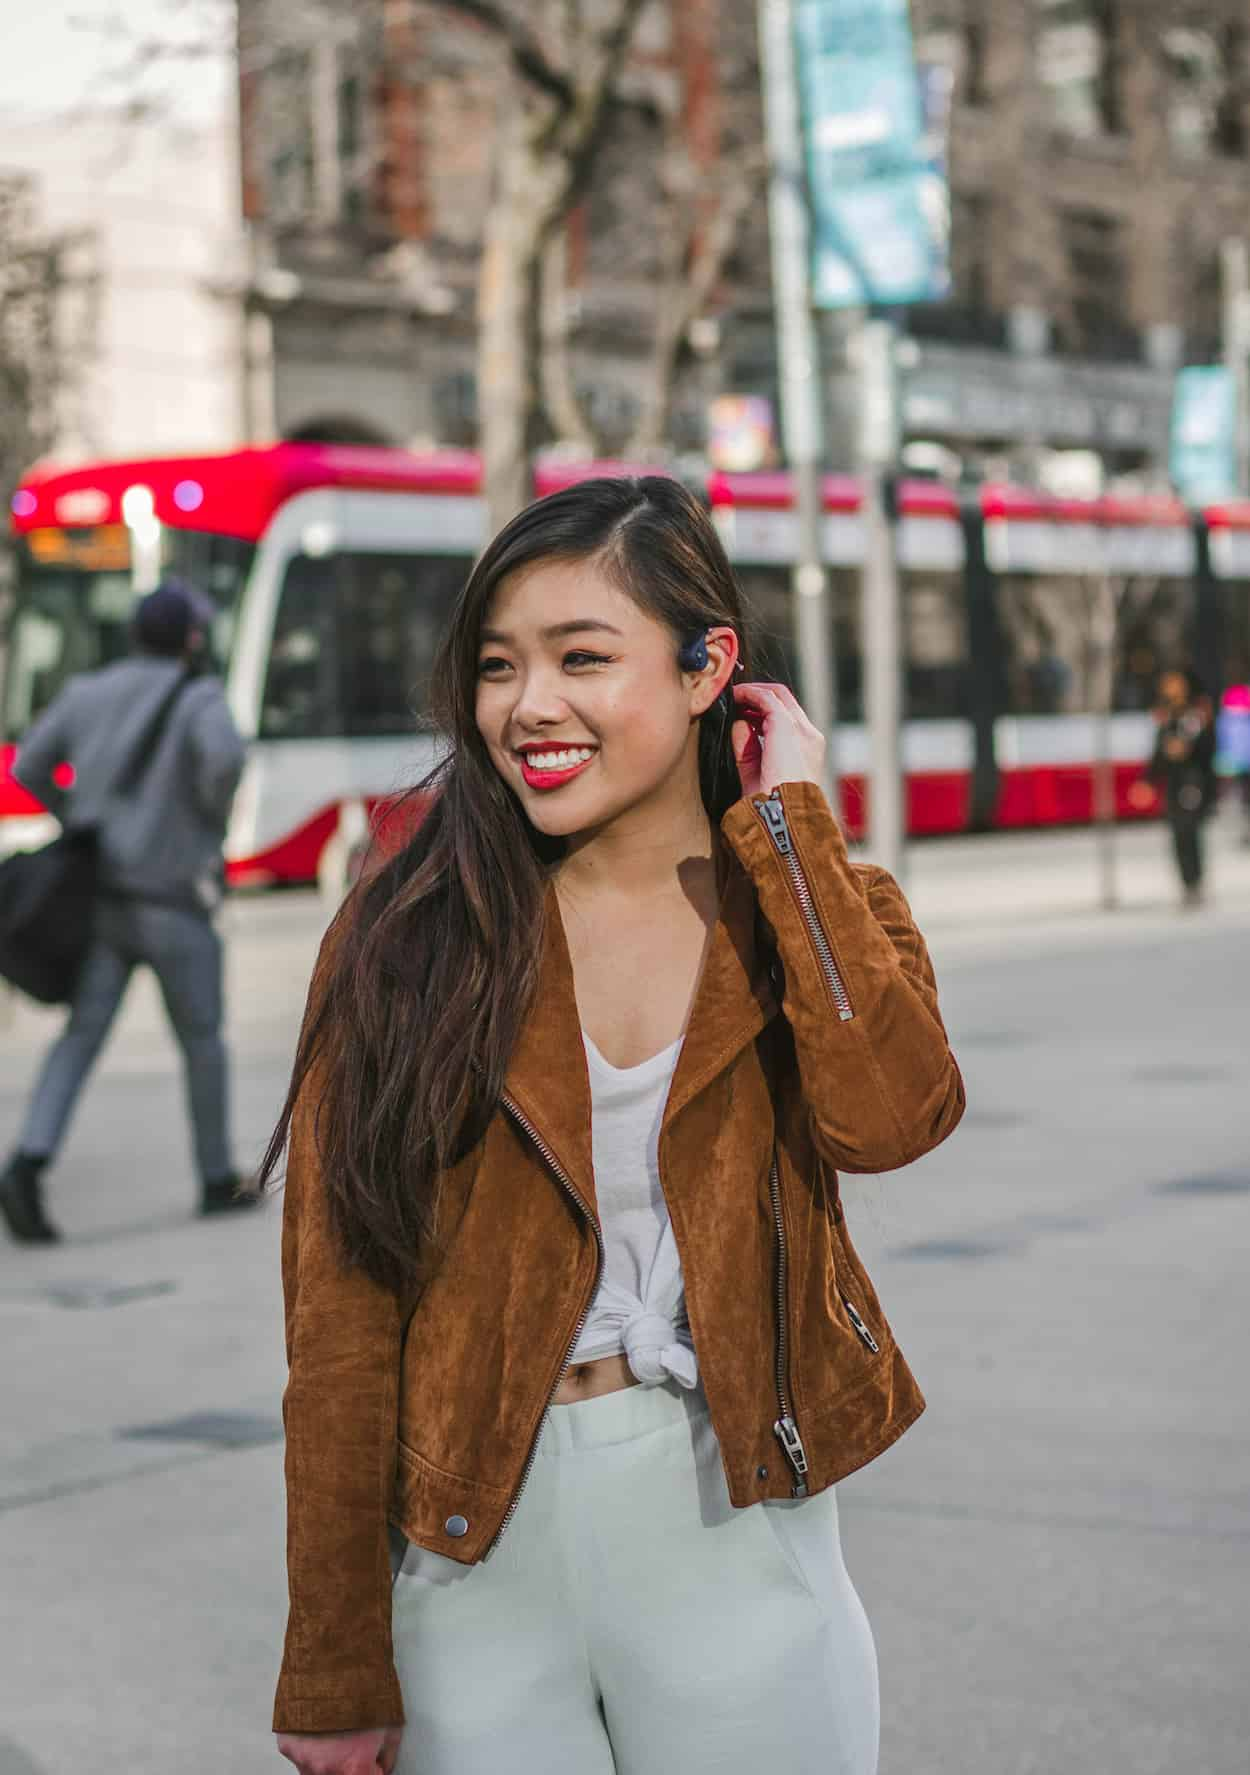 How to make your daily commute more enjoyable